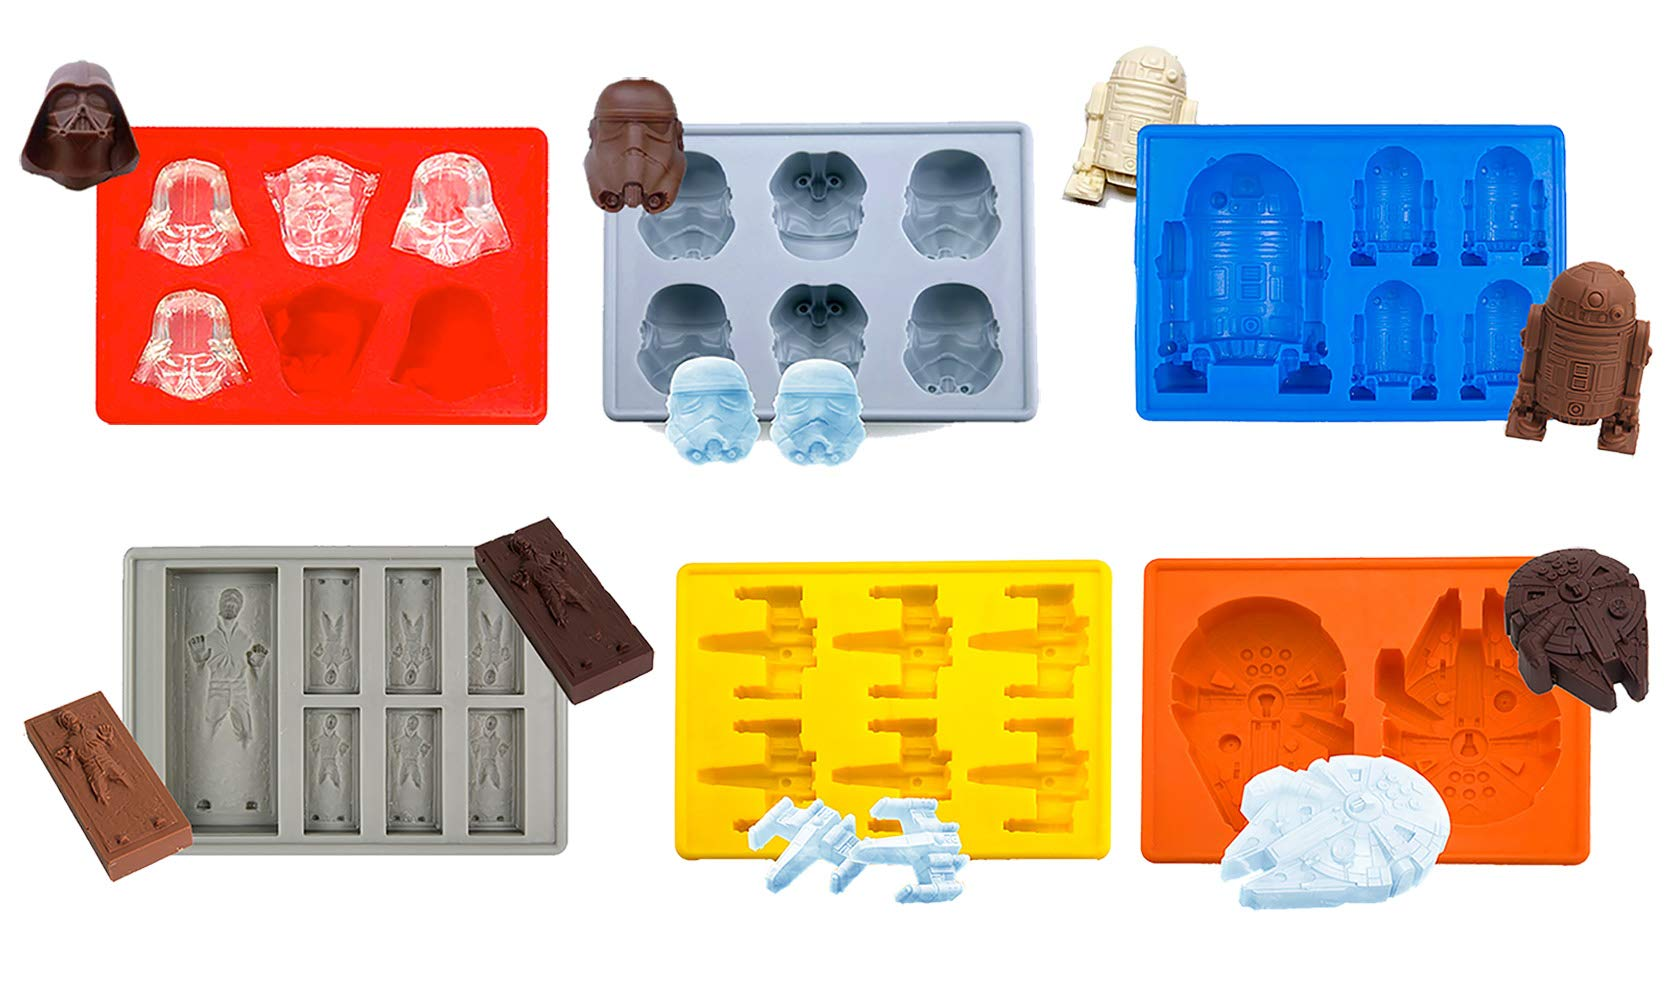 Star Wars Silicone Ice Trays/Chocolate Molds, Set of 6 by Kiwifun (Image #1)